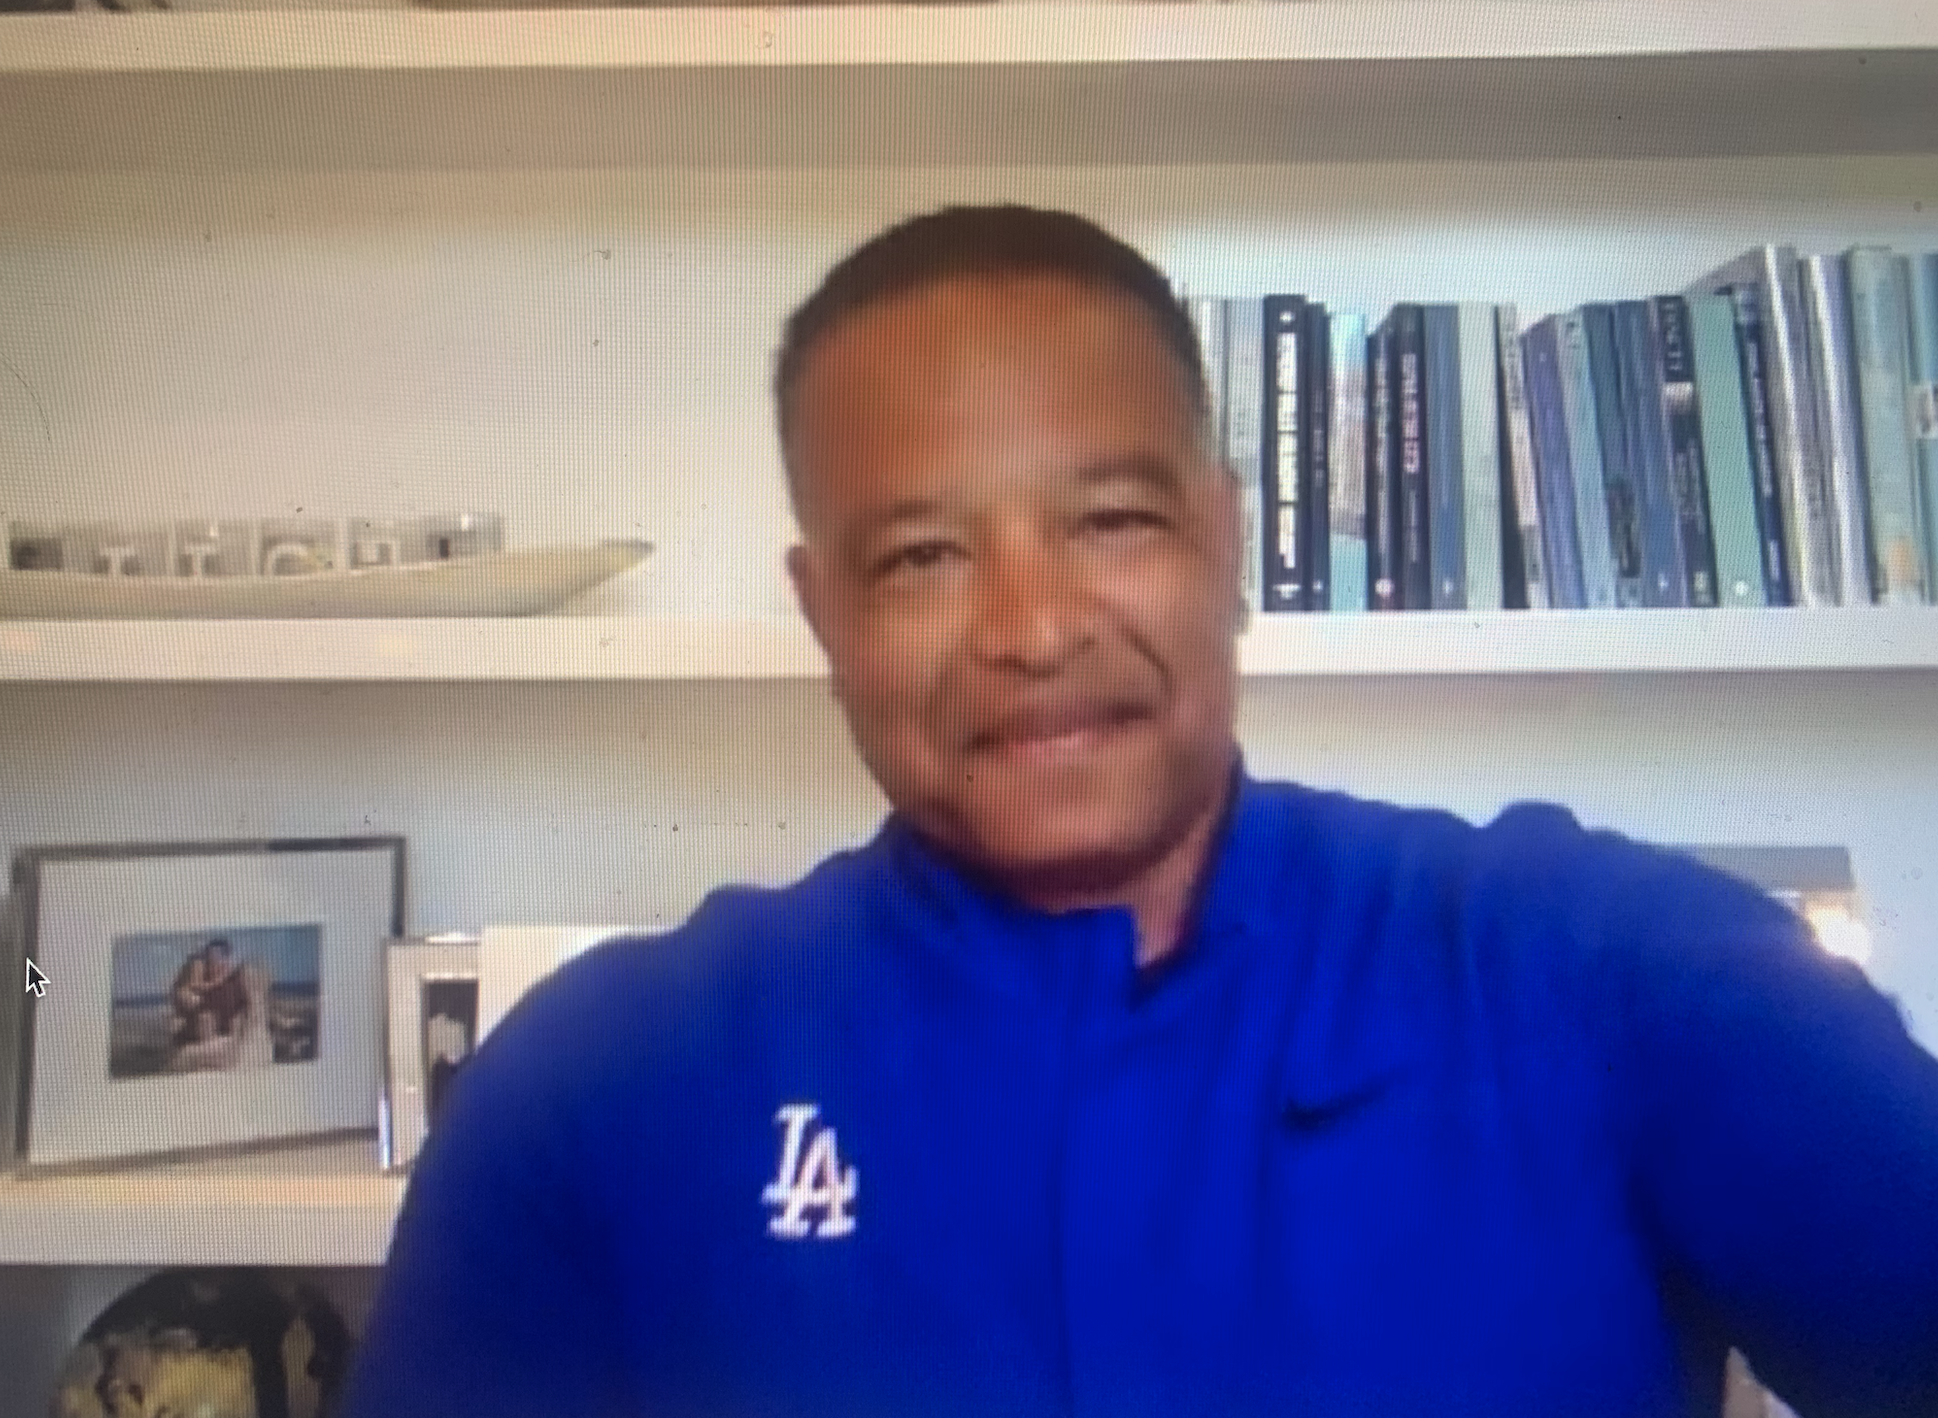 Dodgers Host 11 000 Fans On First Zoom Party With Another To Come By Rowan Kavner Dodger Insider